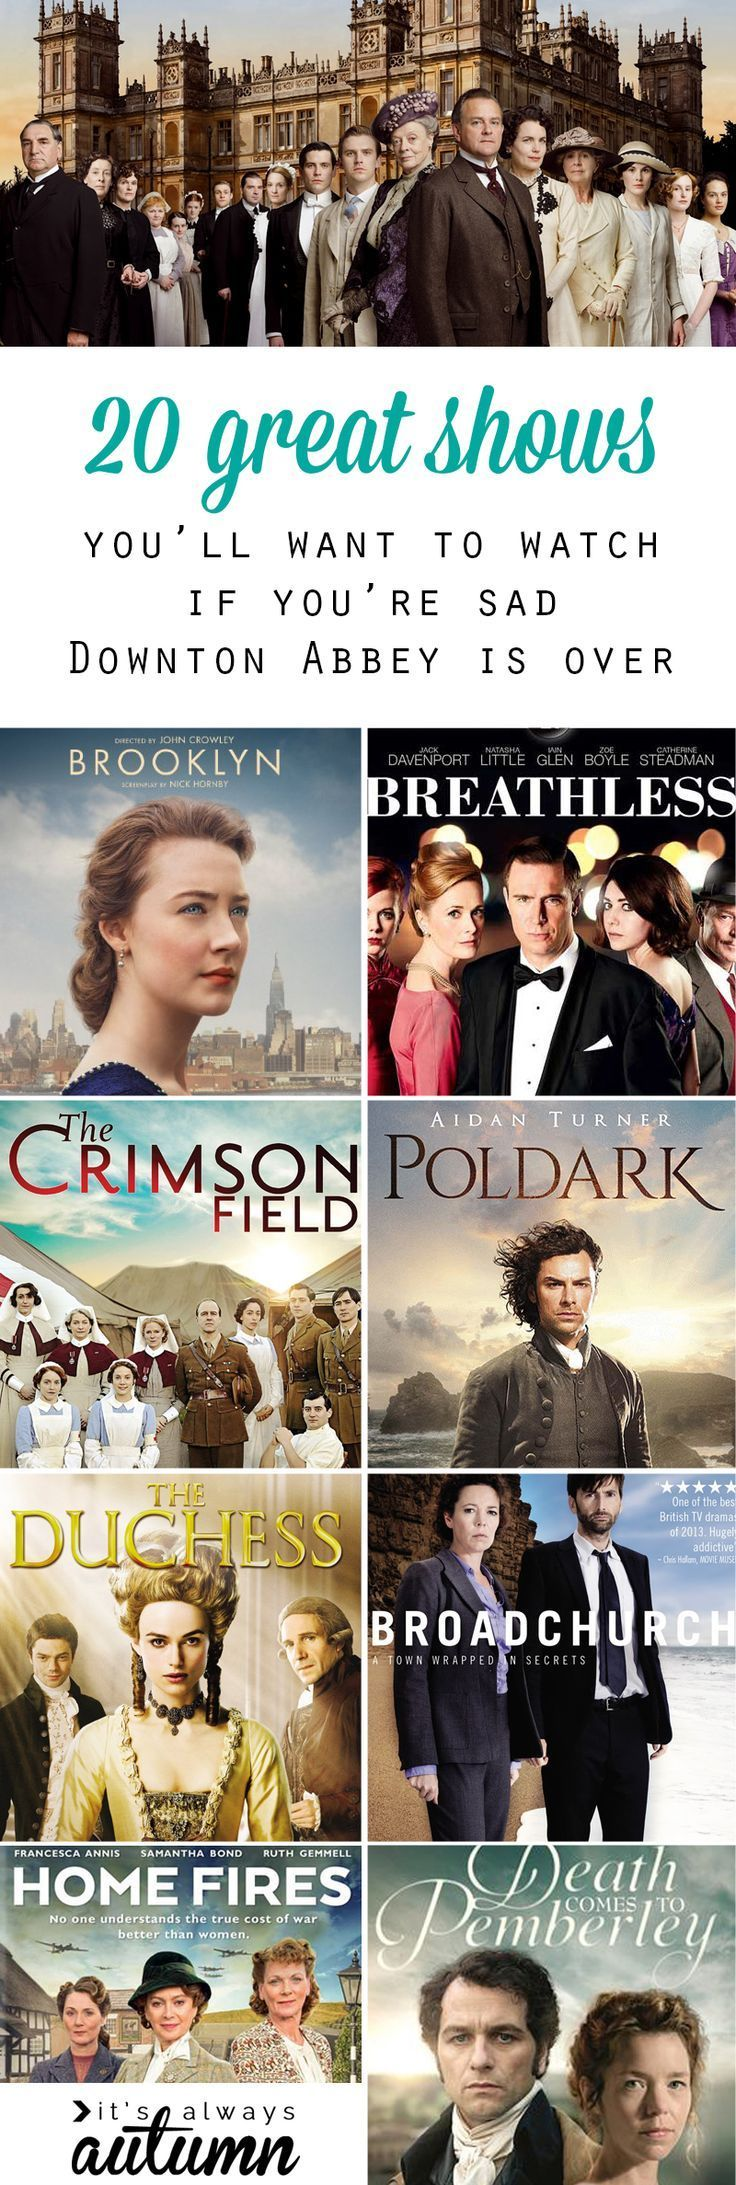 more shows to watch now that Downton Abbey is over #seriesonnetflix